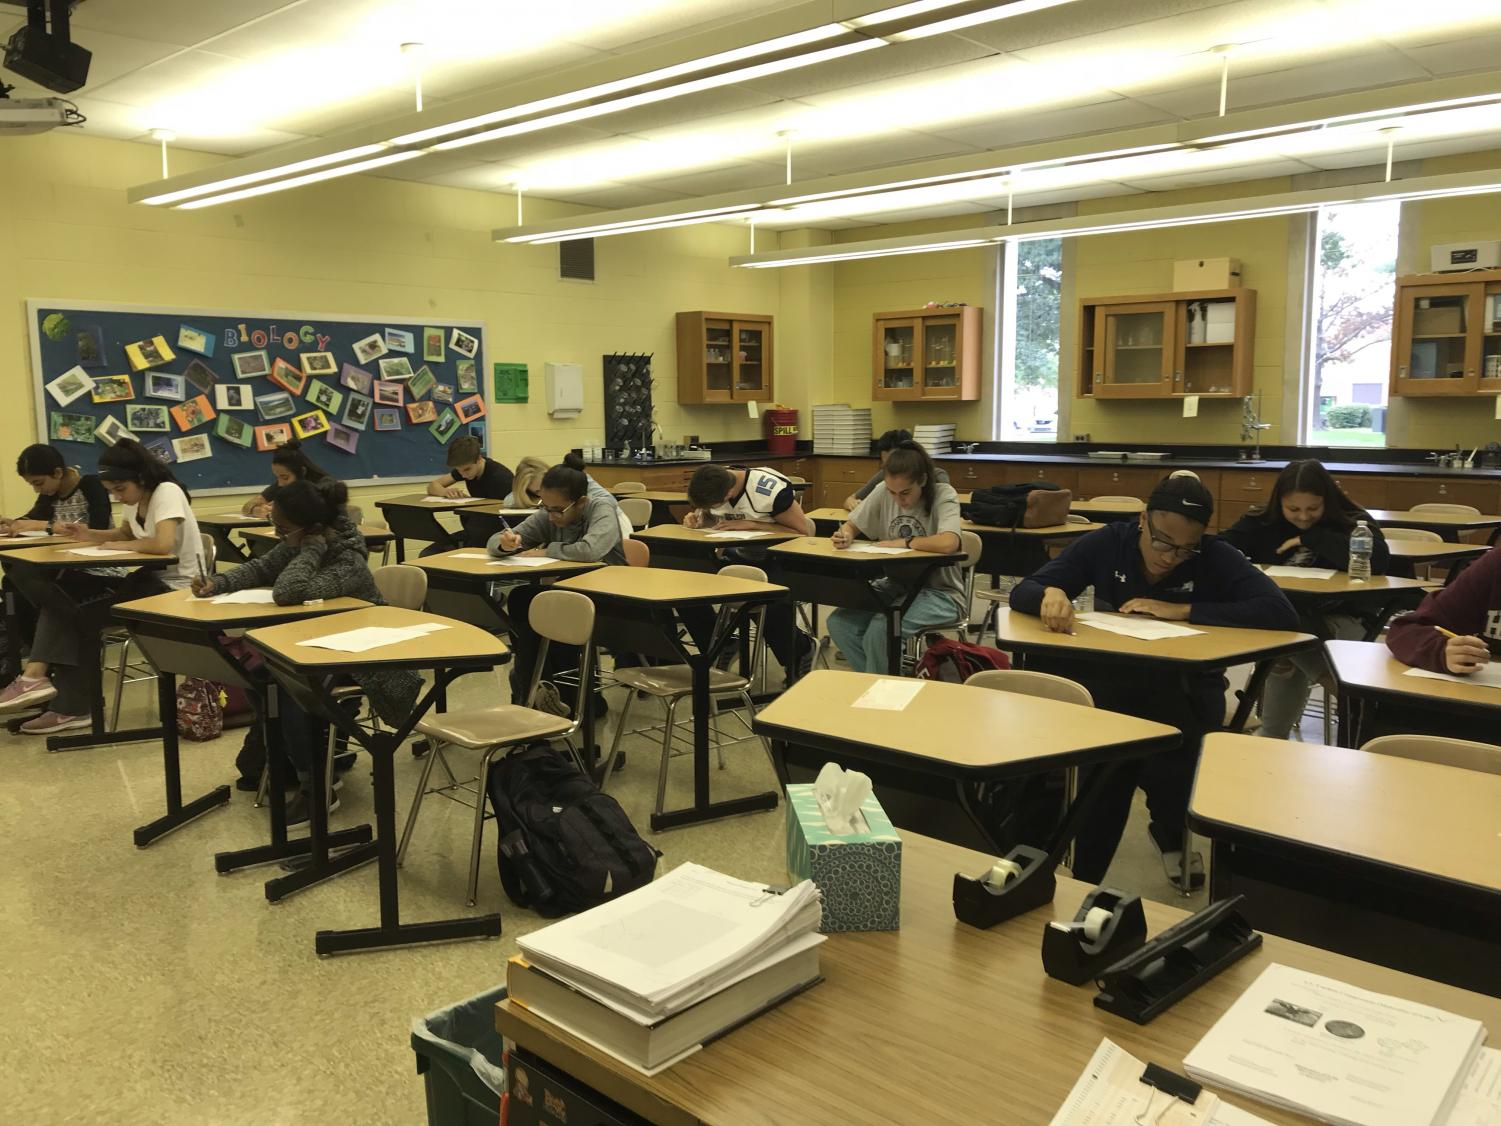 Students at NPHS take a test: Recently with new technology, students have been finding easier ways to cheat and plagiarize on exams and assignments.